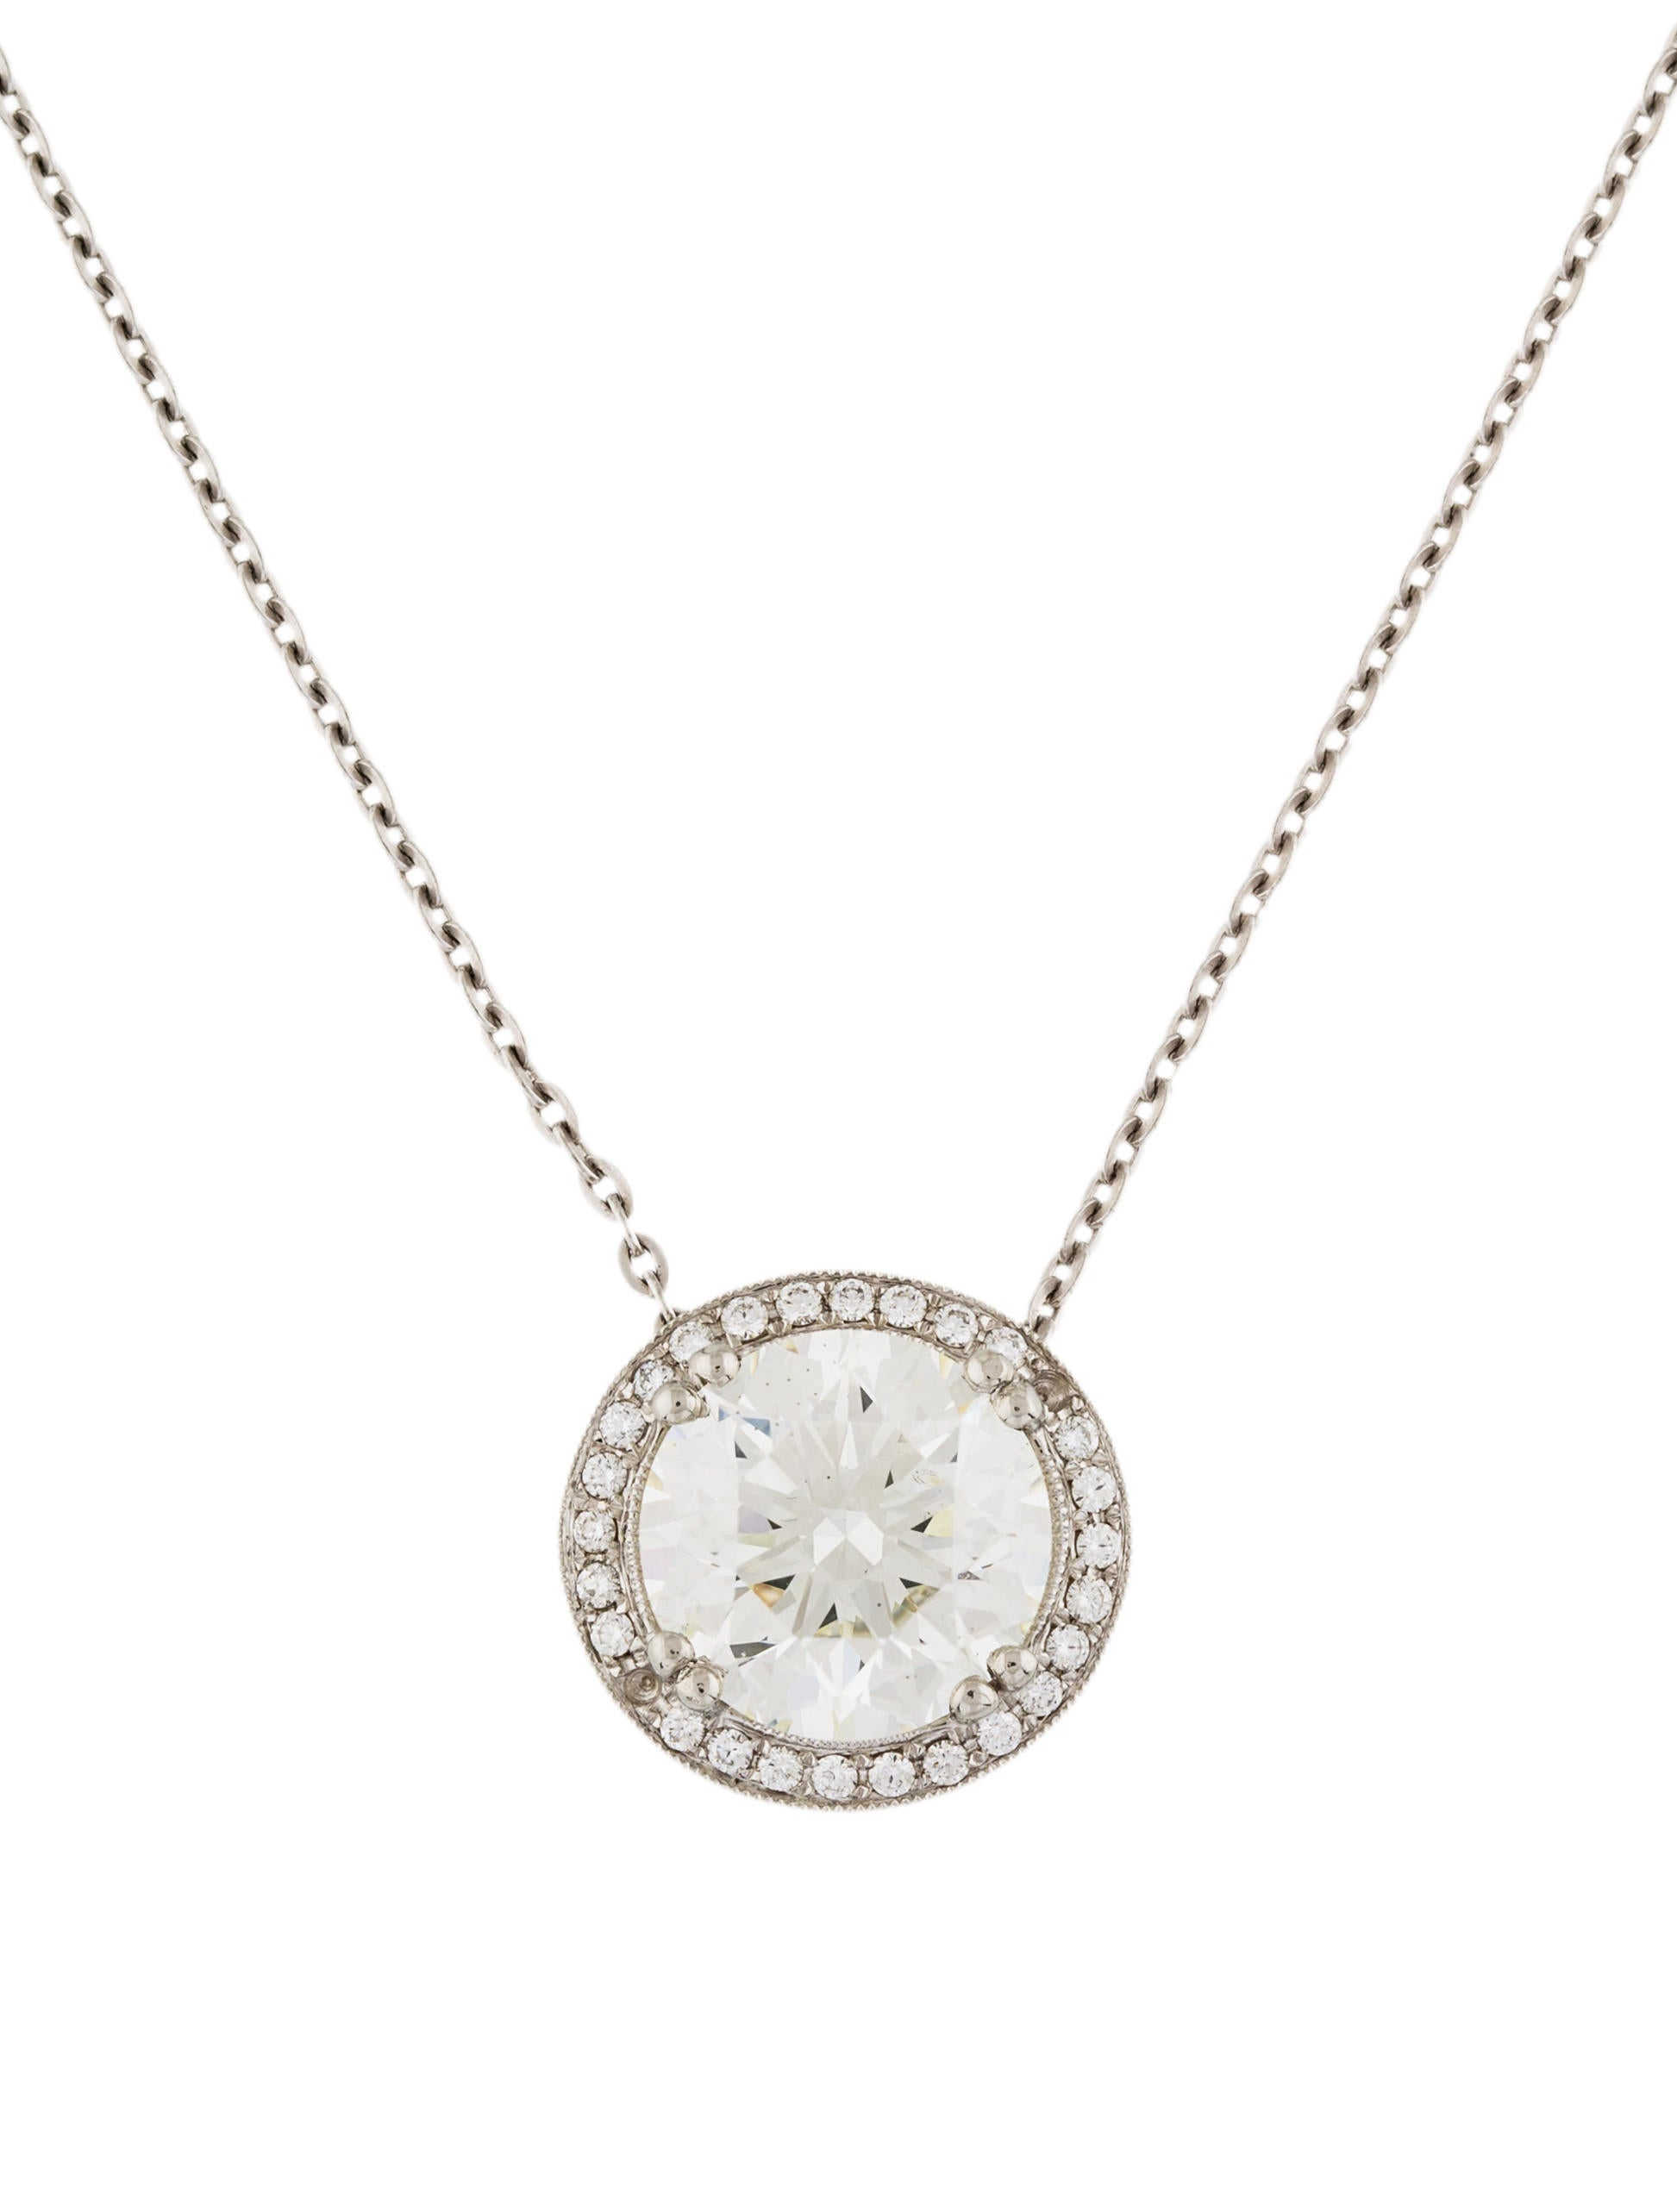 products necklaces diamond co pendant necklace jewelry tiffany and enlarged platinum